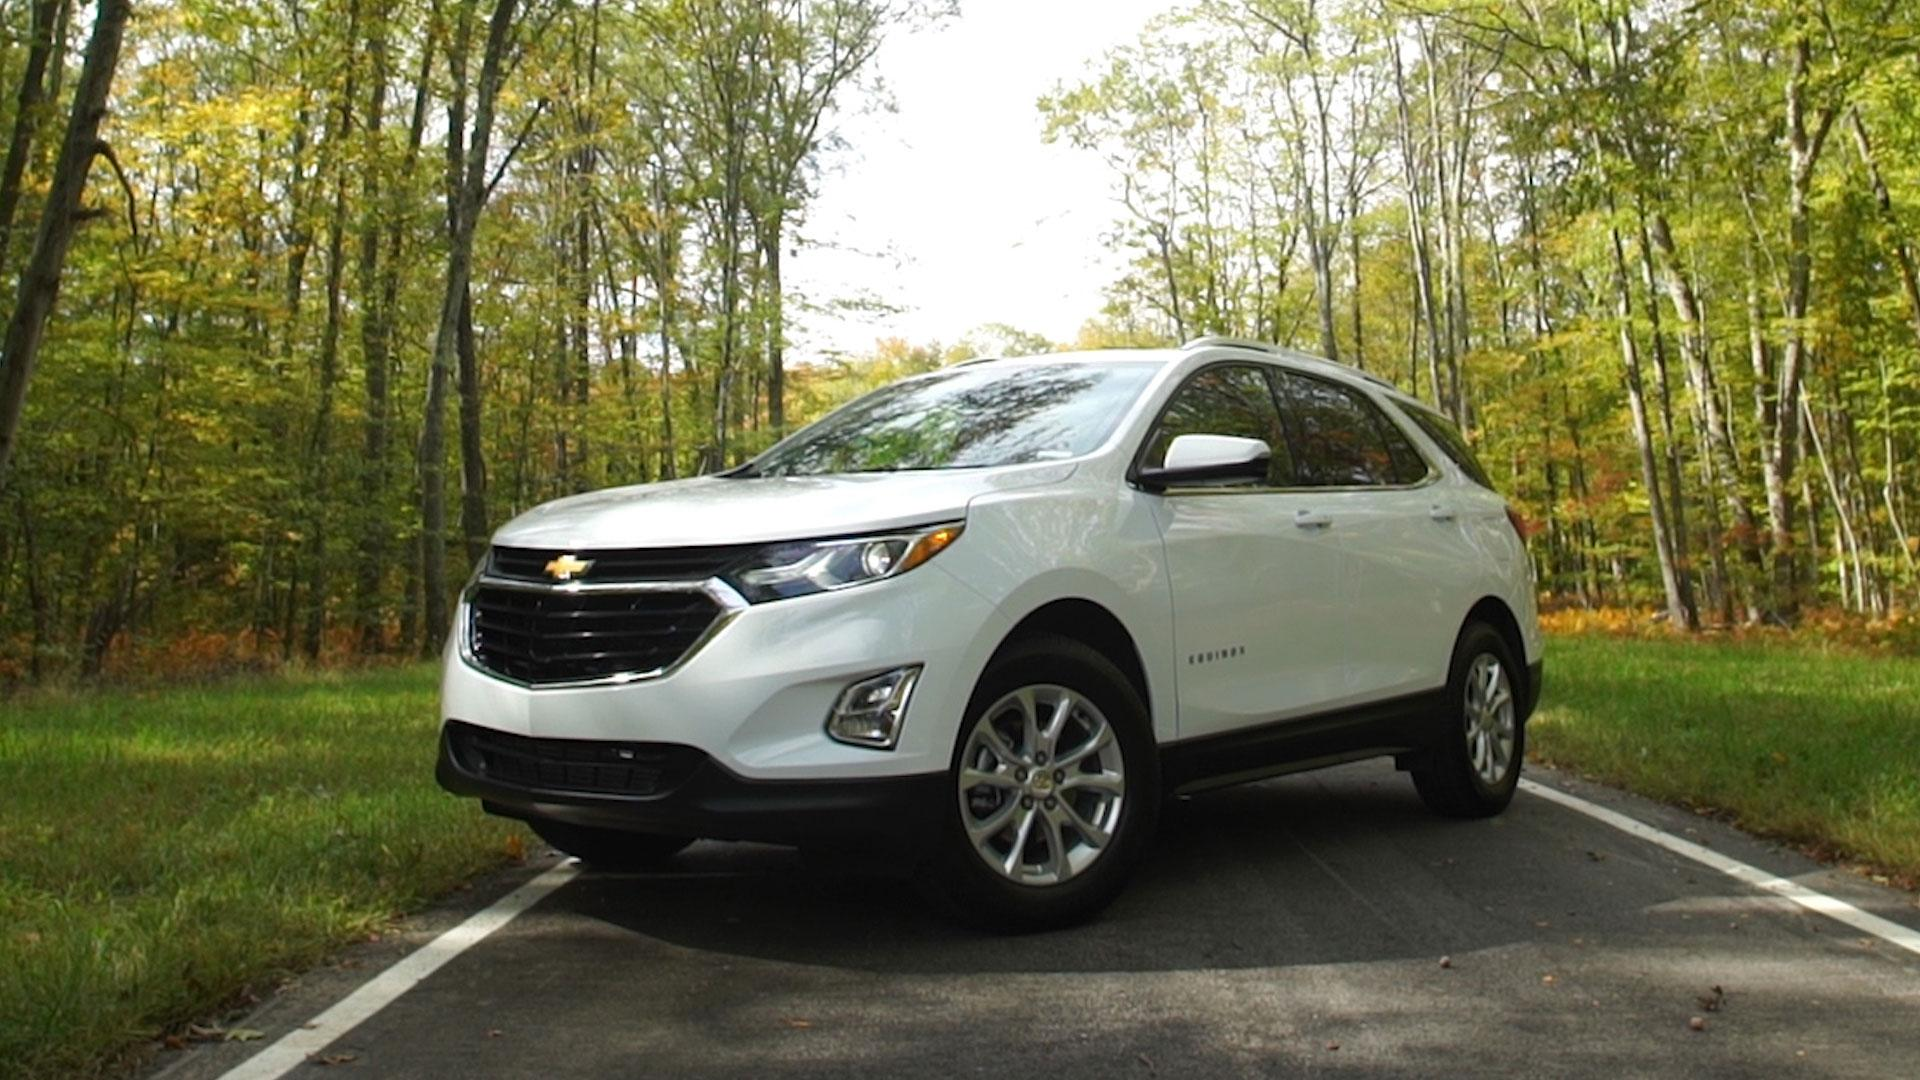 2018 Chevrolet Equinox Sheds Weight, Gains Turbo Engines